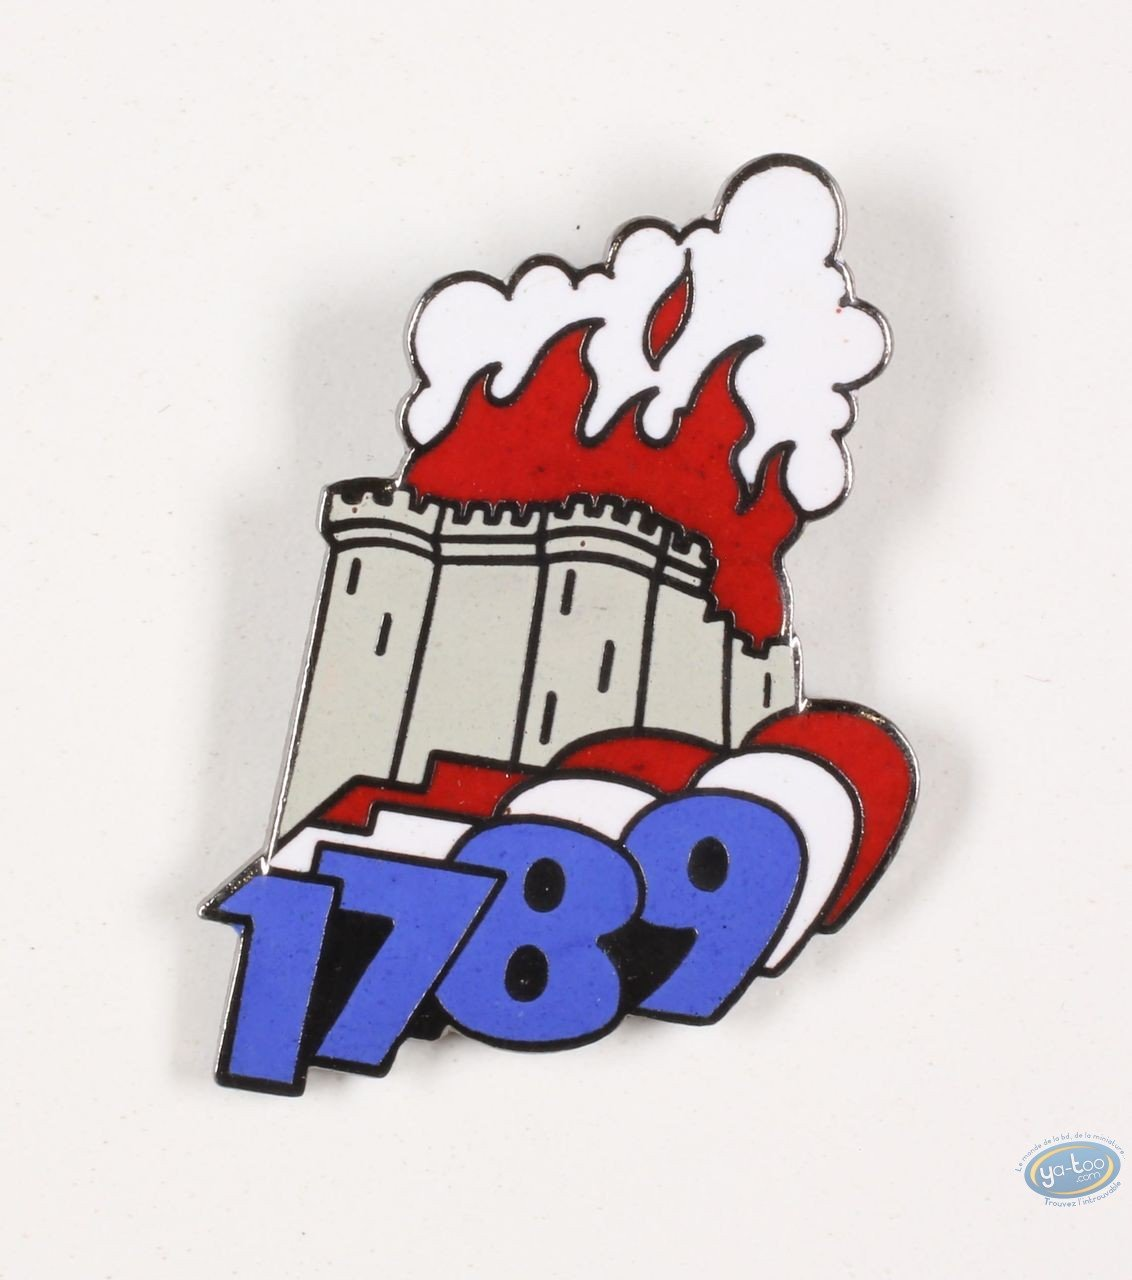 Pin's, 1789, la révolution Française : 1789, the French Revolution, the fortress on fire!